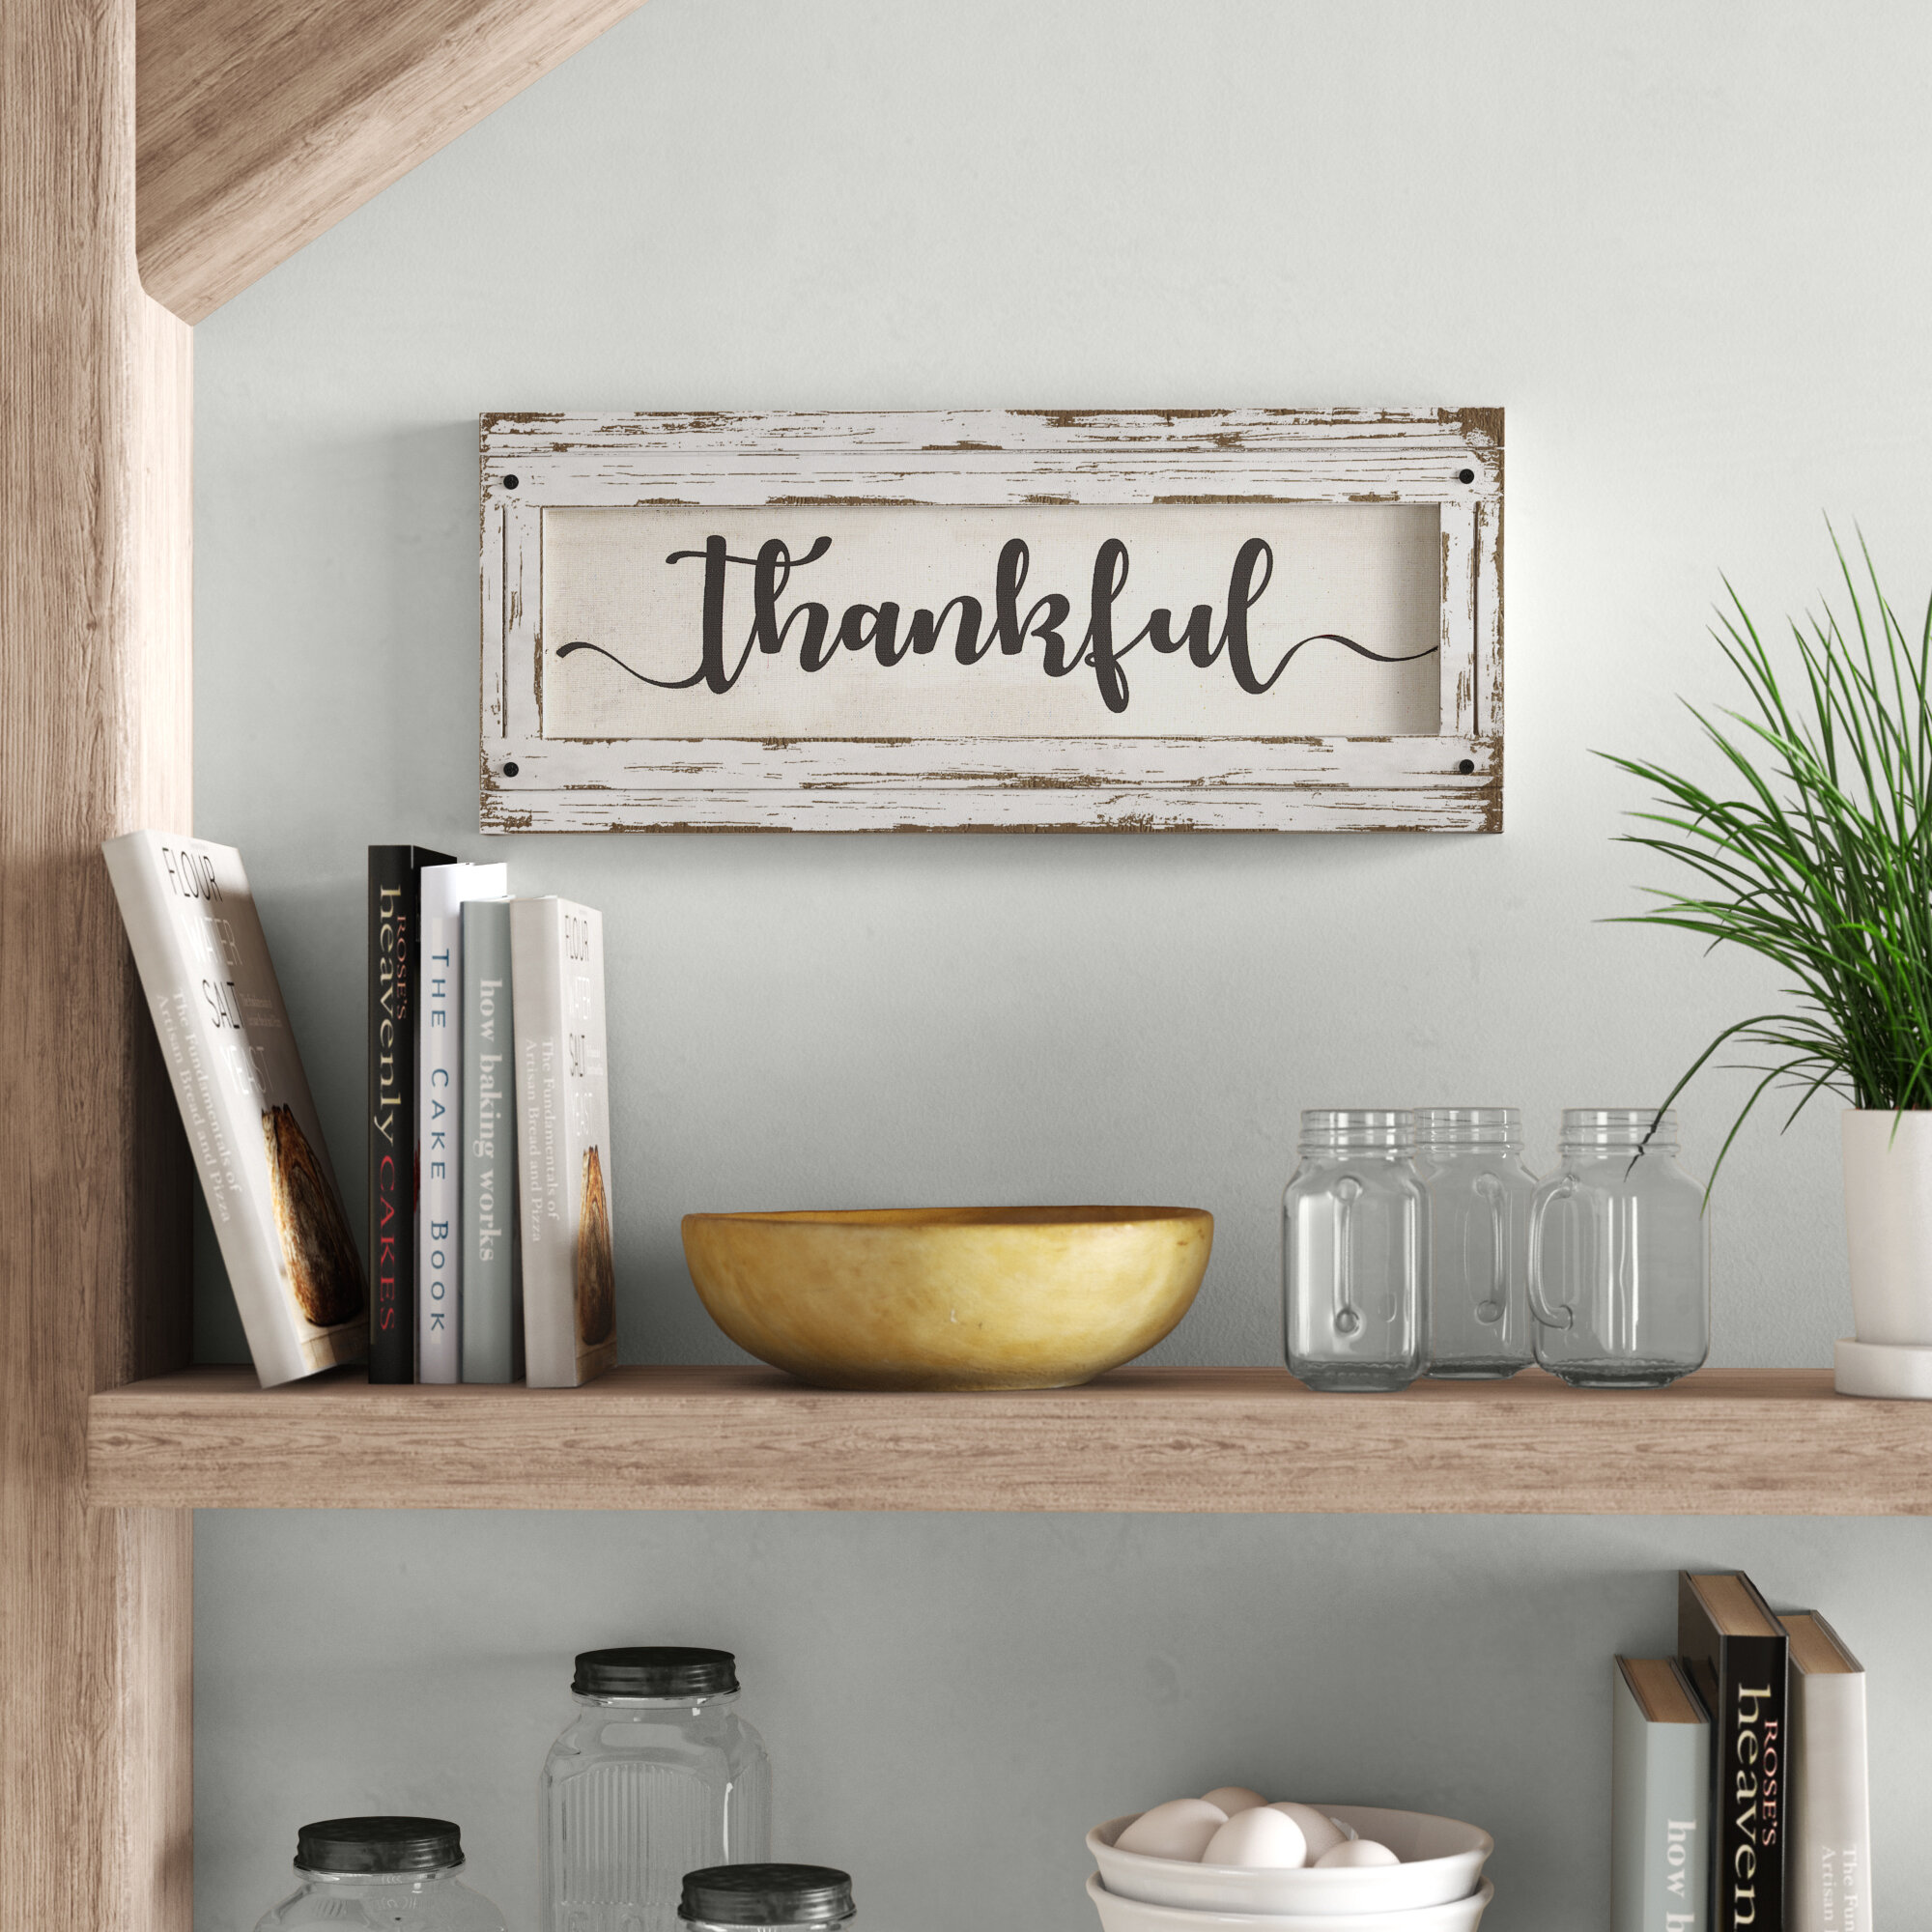 Ann Collectoin Thankful Wood Framed Inspirational Canvas Sign Farmhouse Wall Decor Reviews Birch Lane